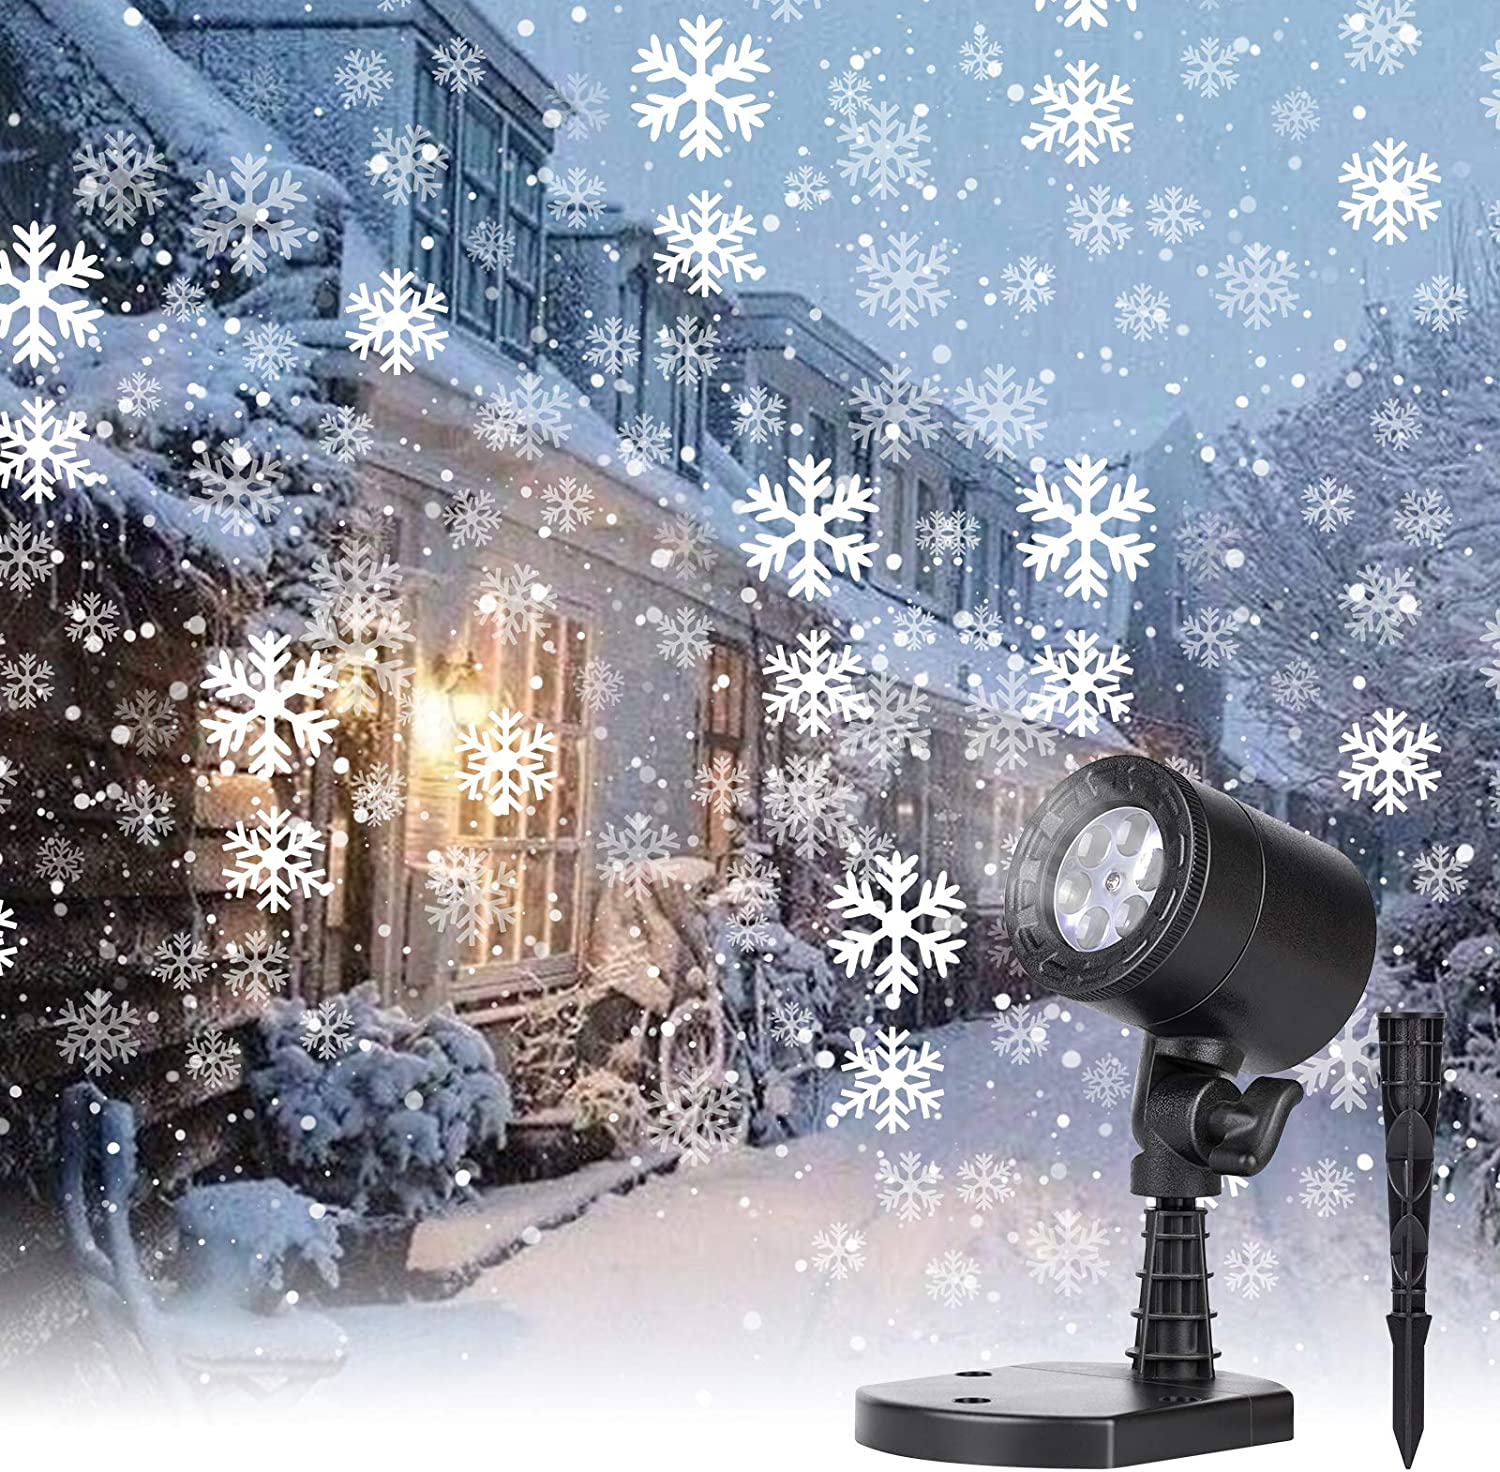 Brightown Christmas <br>Snowflake Projector